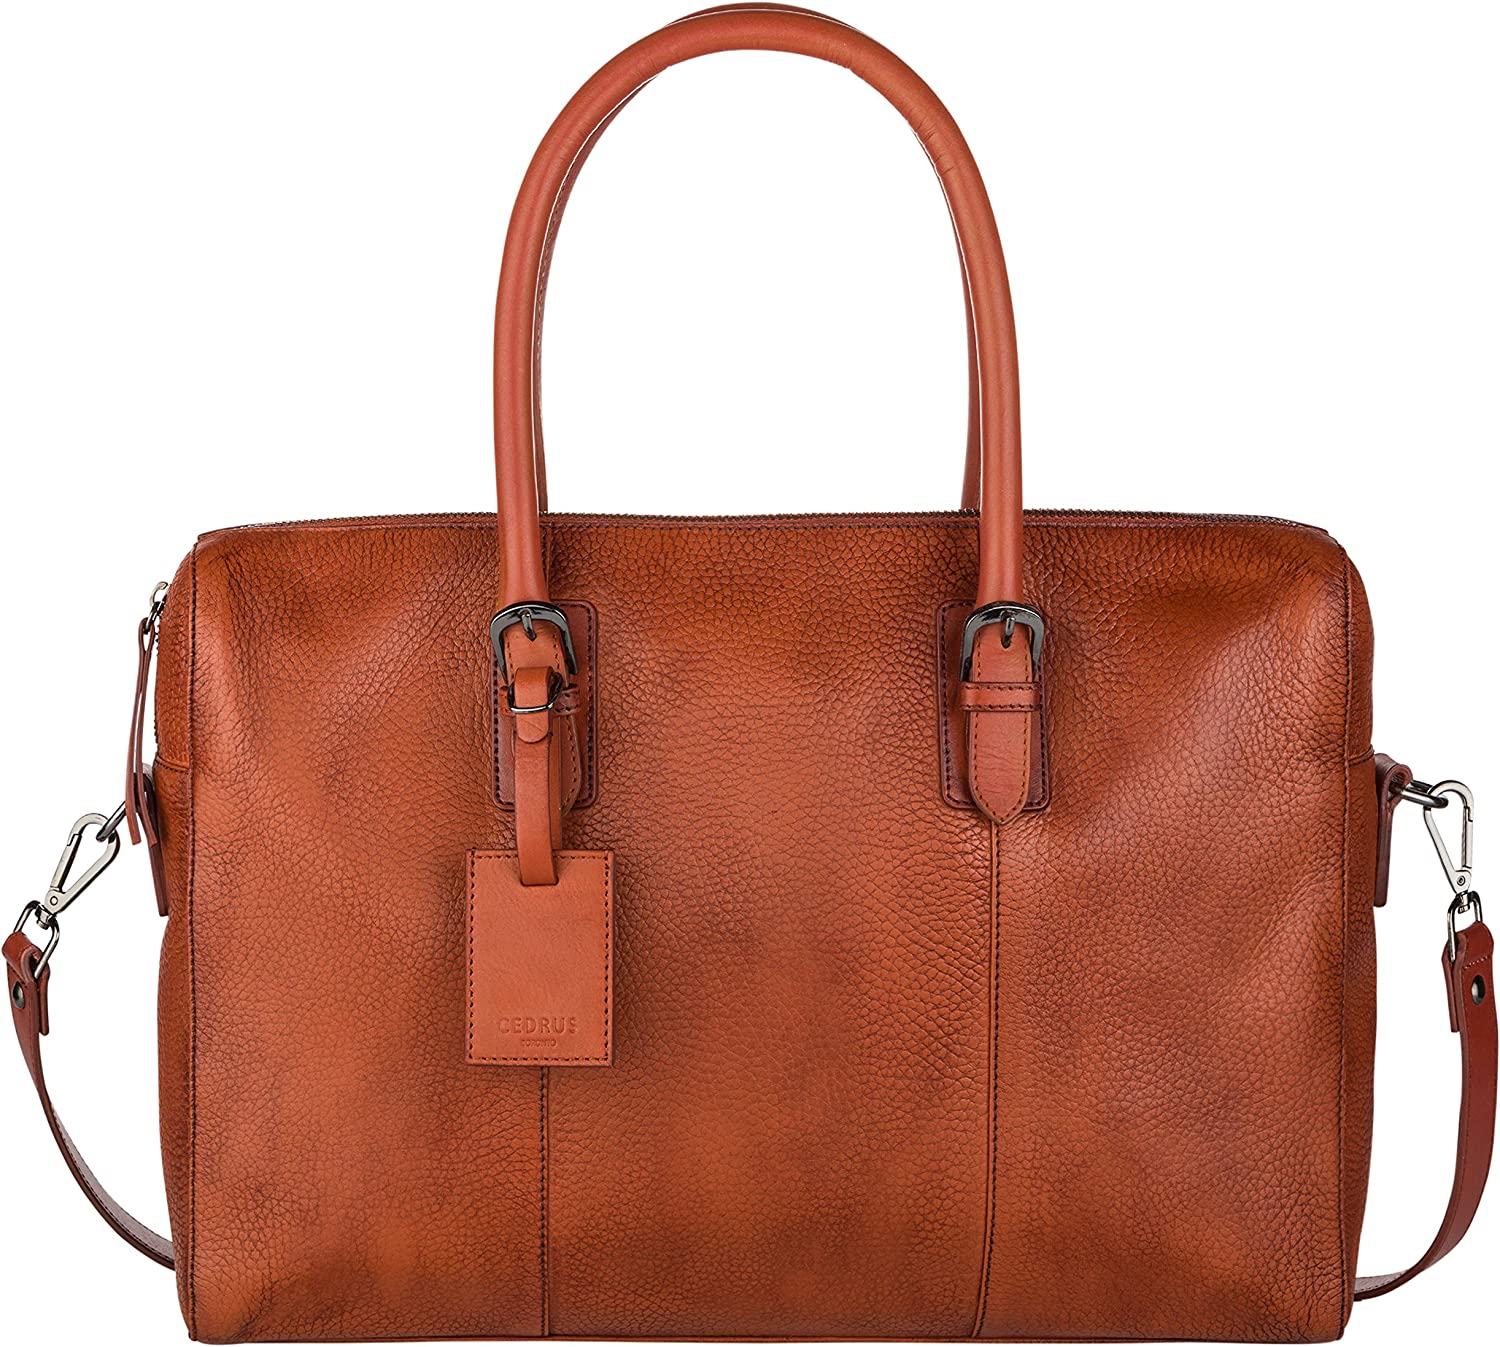 Cedrus Meeting Bag Top-Grain Leather Briefcase, Messenger Bag, Laptop Bag, Satchel fits 15